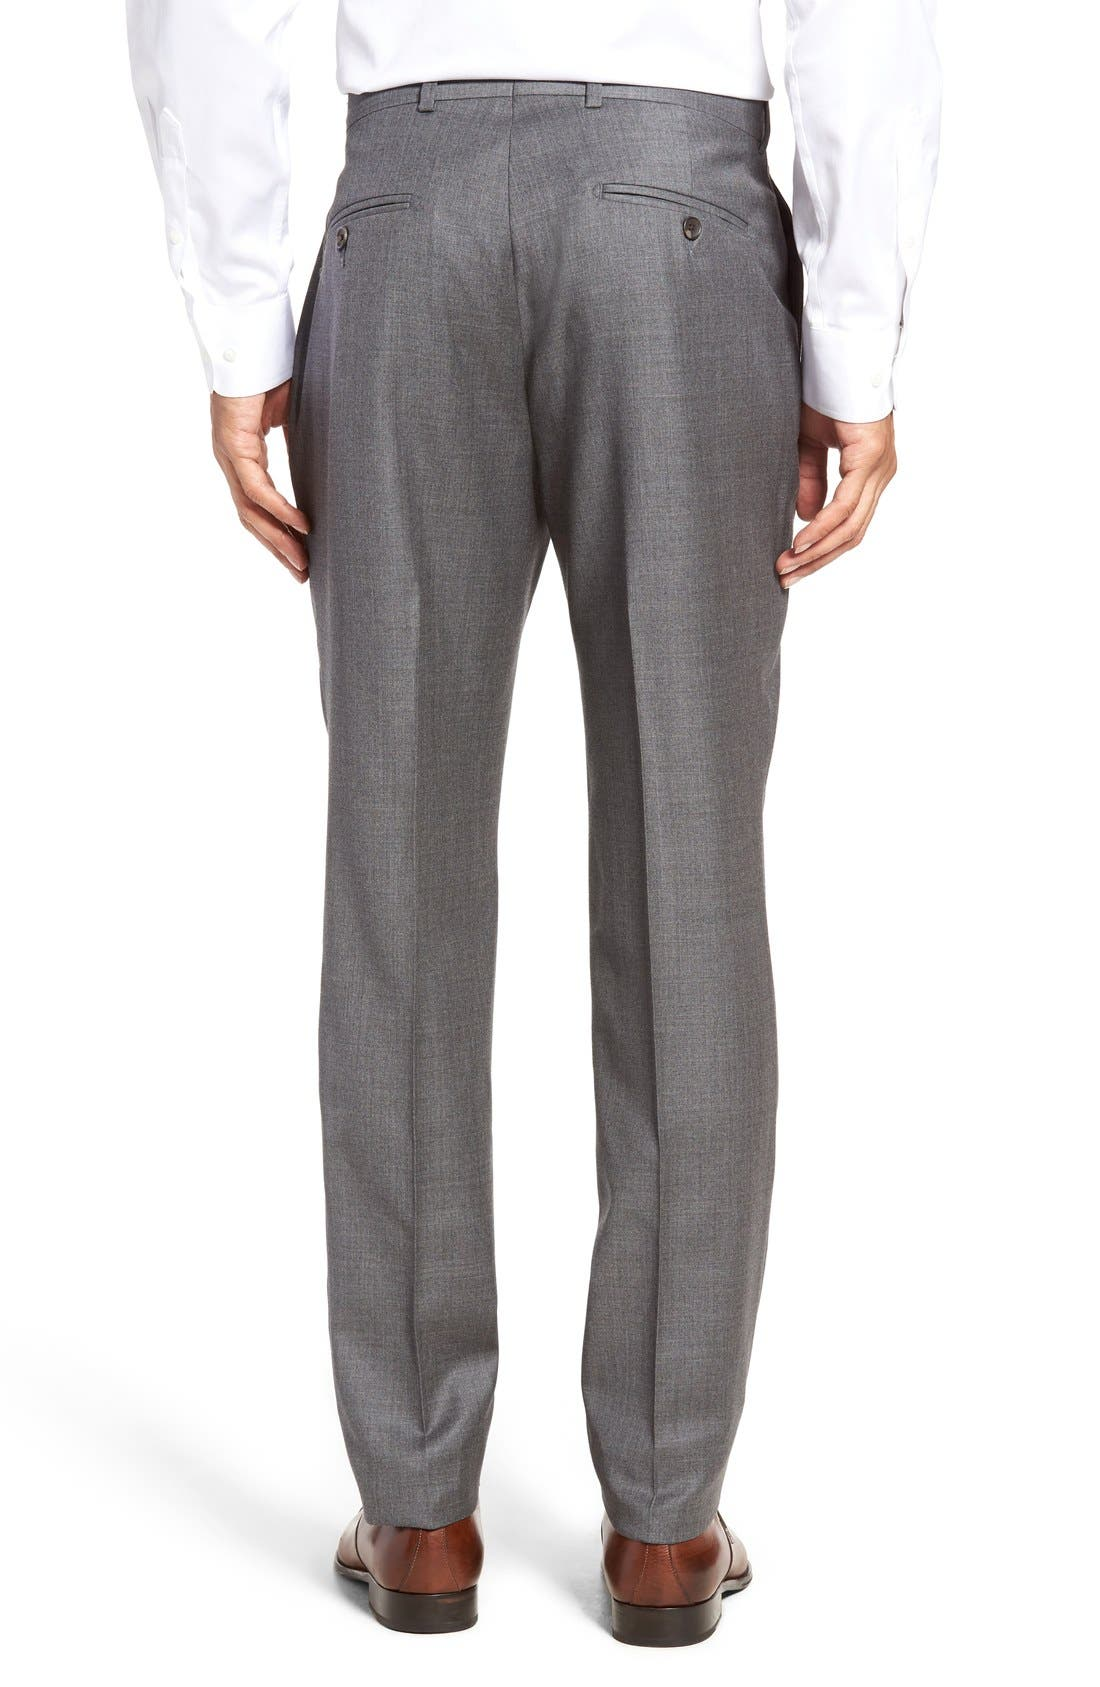 Dagger Flat Front Solid Wool Trousers,                             Alternate thumbnail 2, color,                             Medium Grey